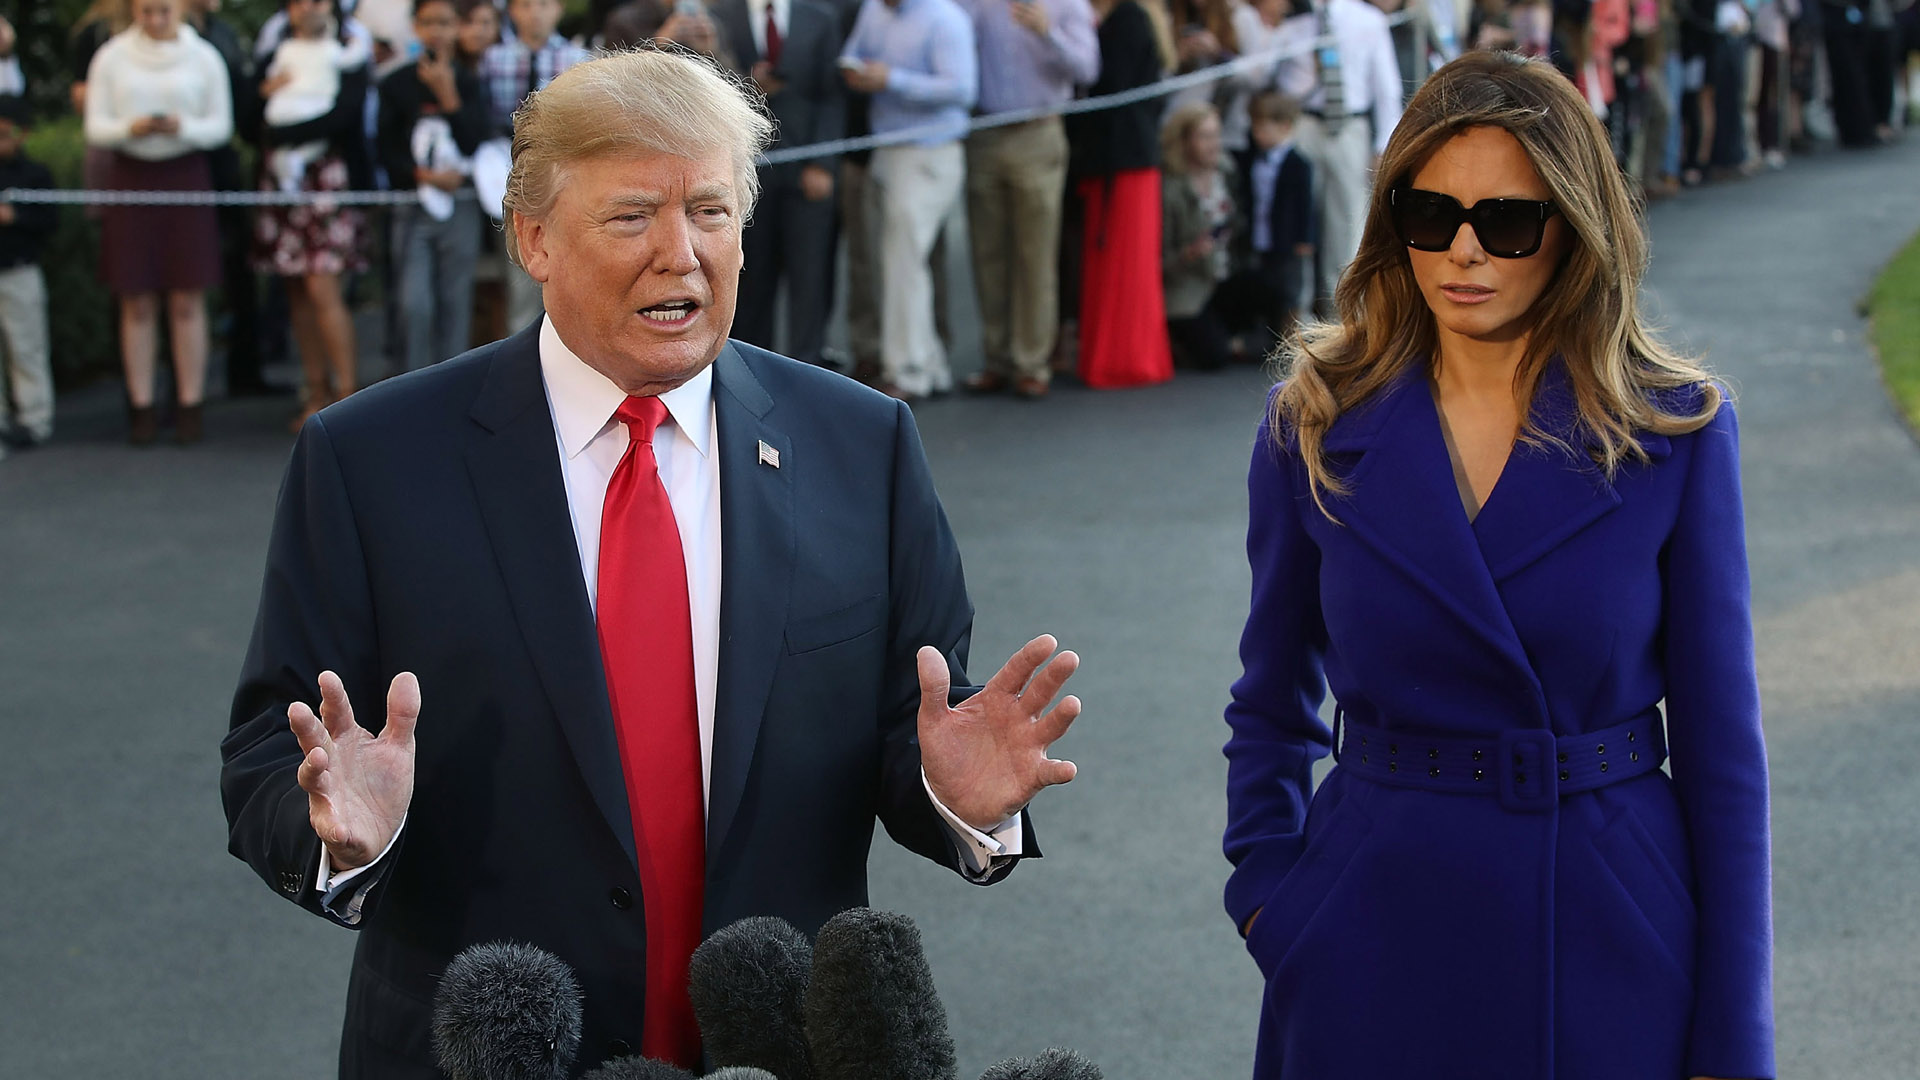 Donald Trump, Melania Trump  in DC, before departing to Asia46963378-159532